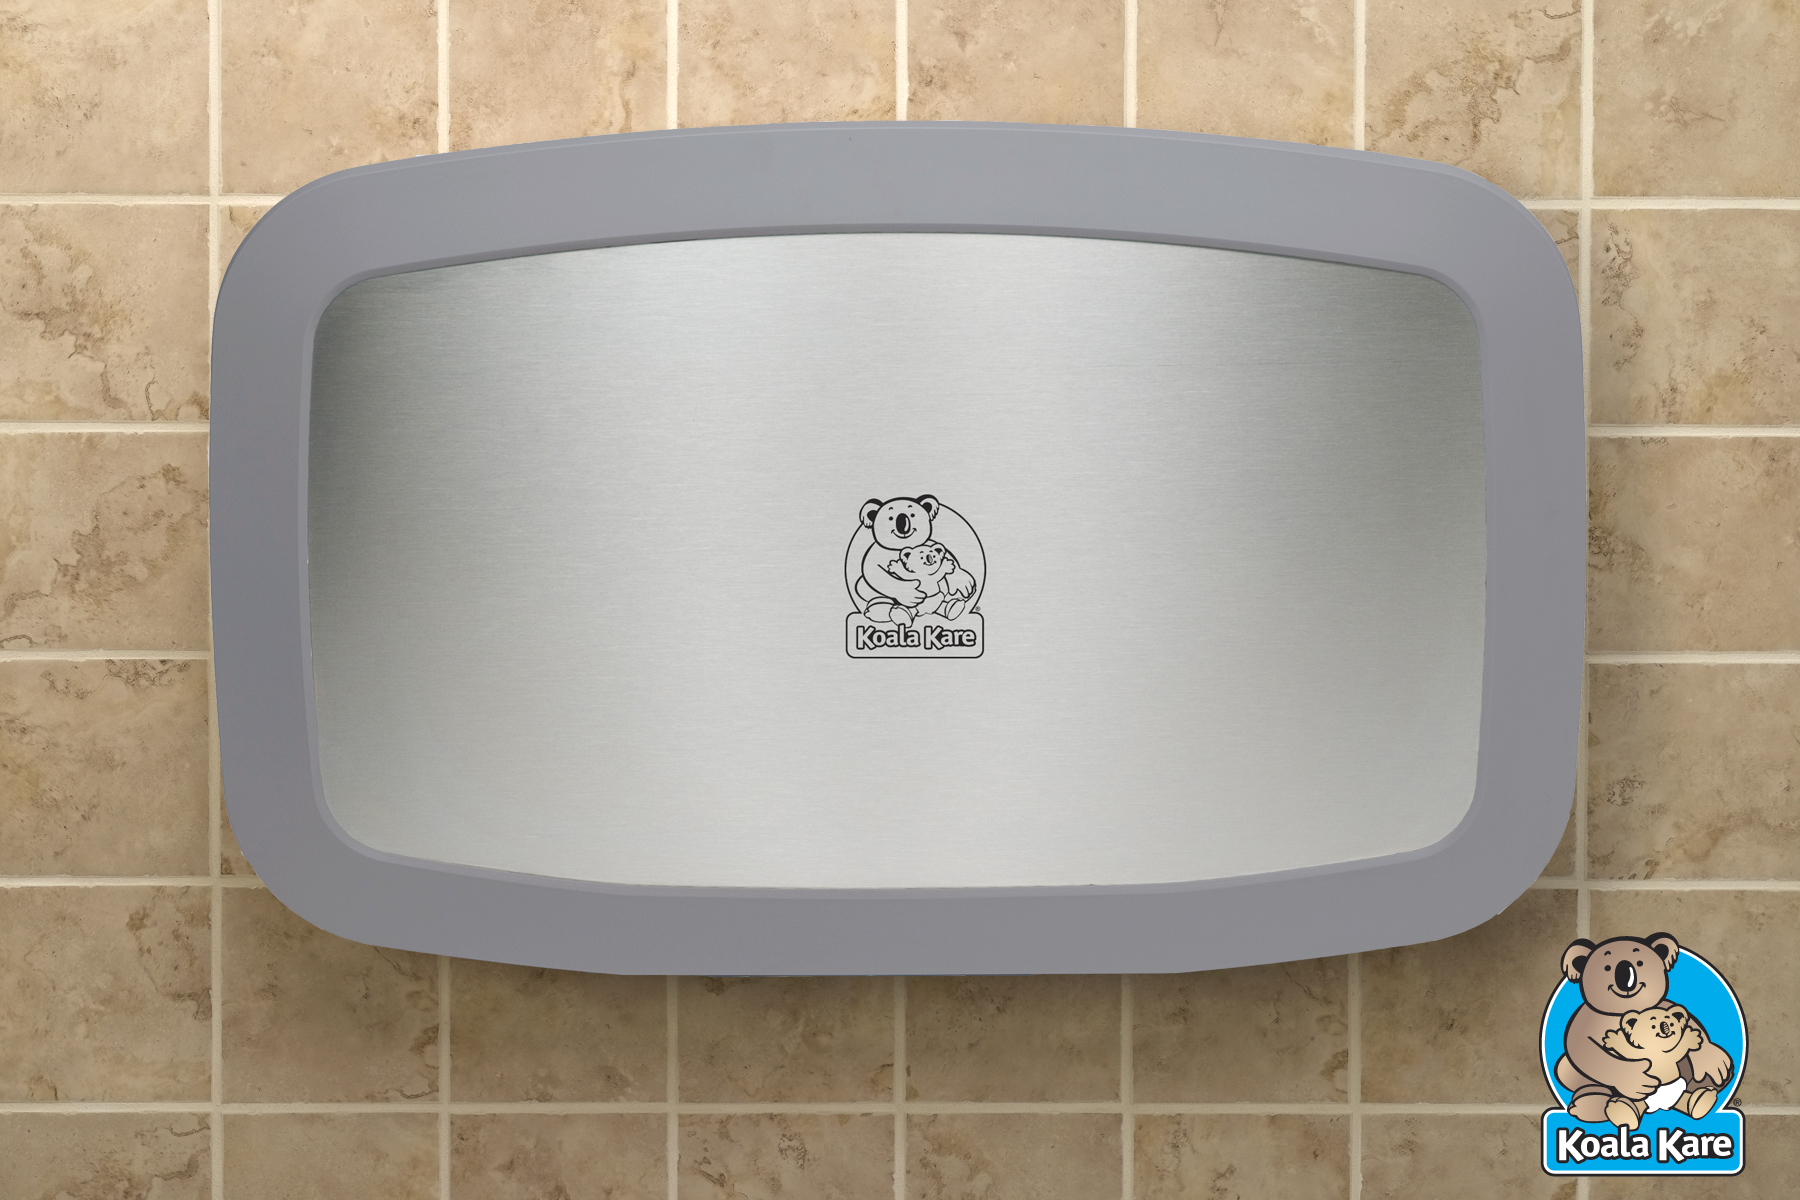 Koala Baby Changing Station KB - Commercial bathroom baby changing table